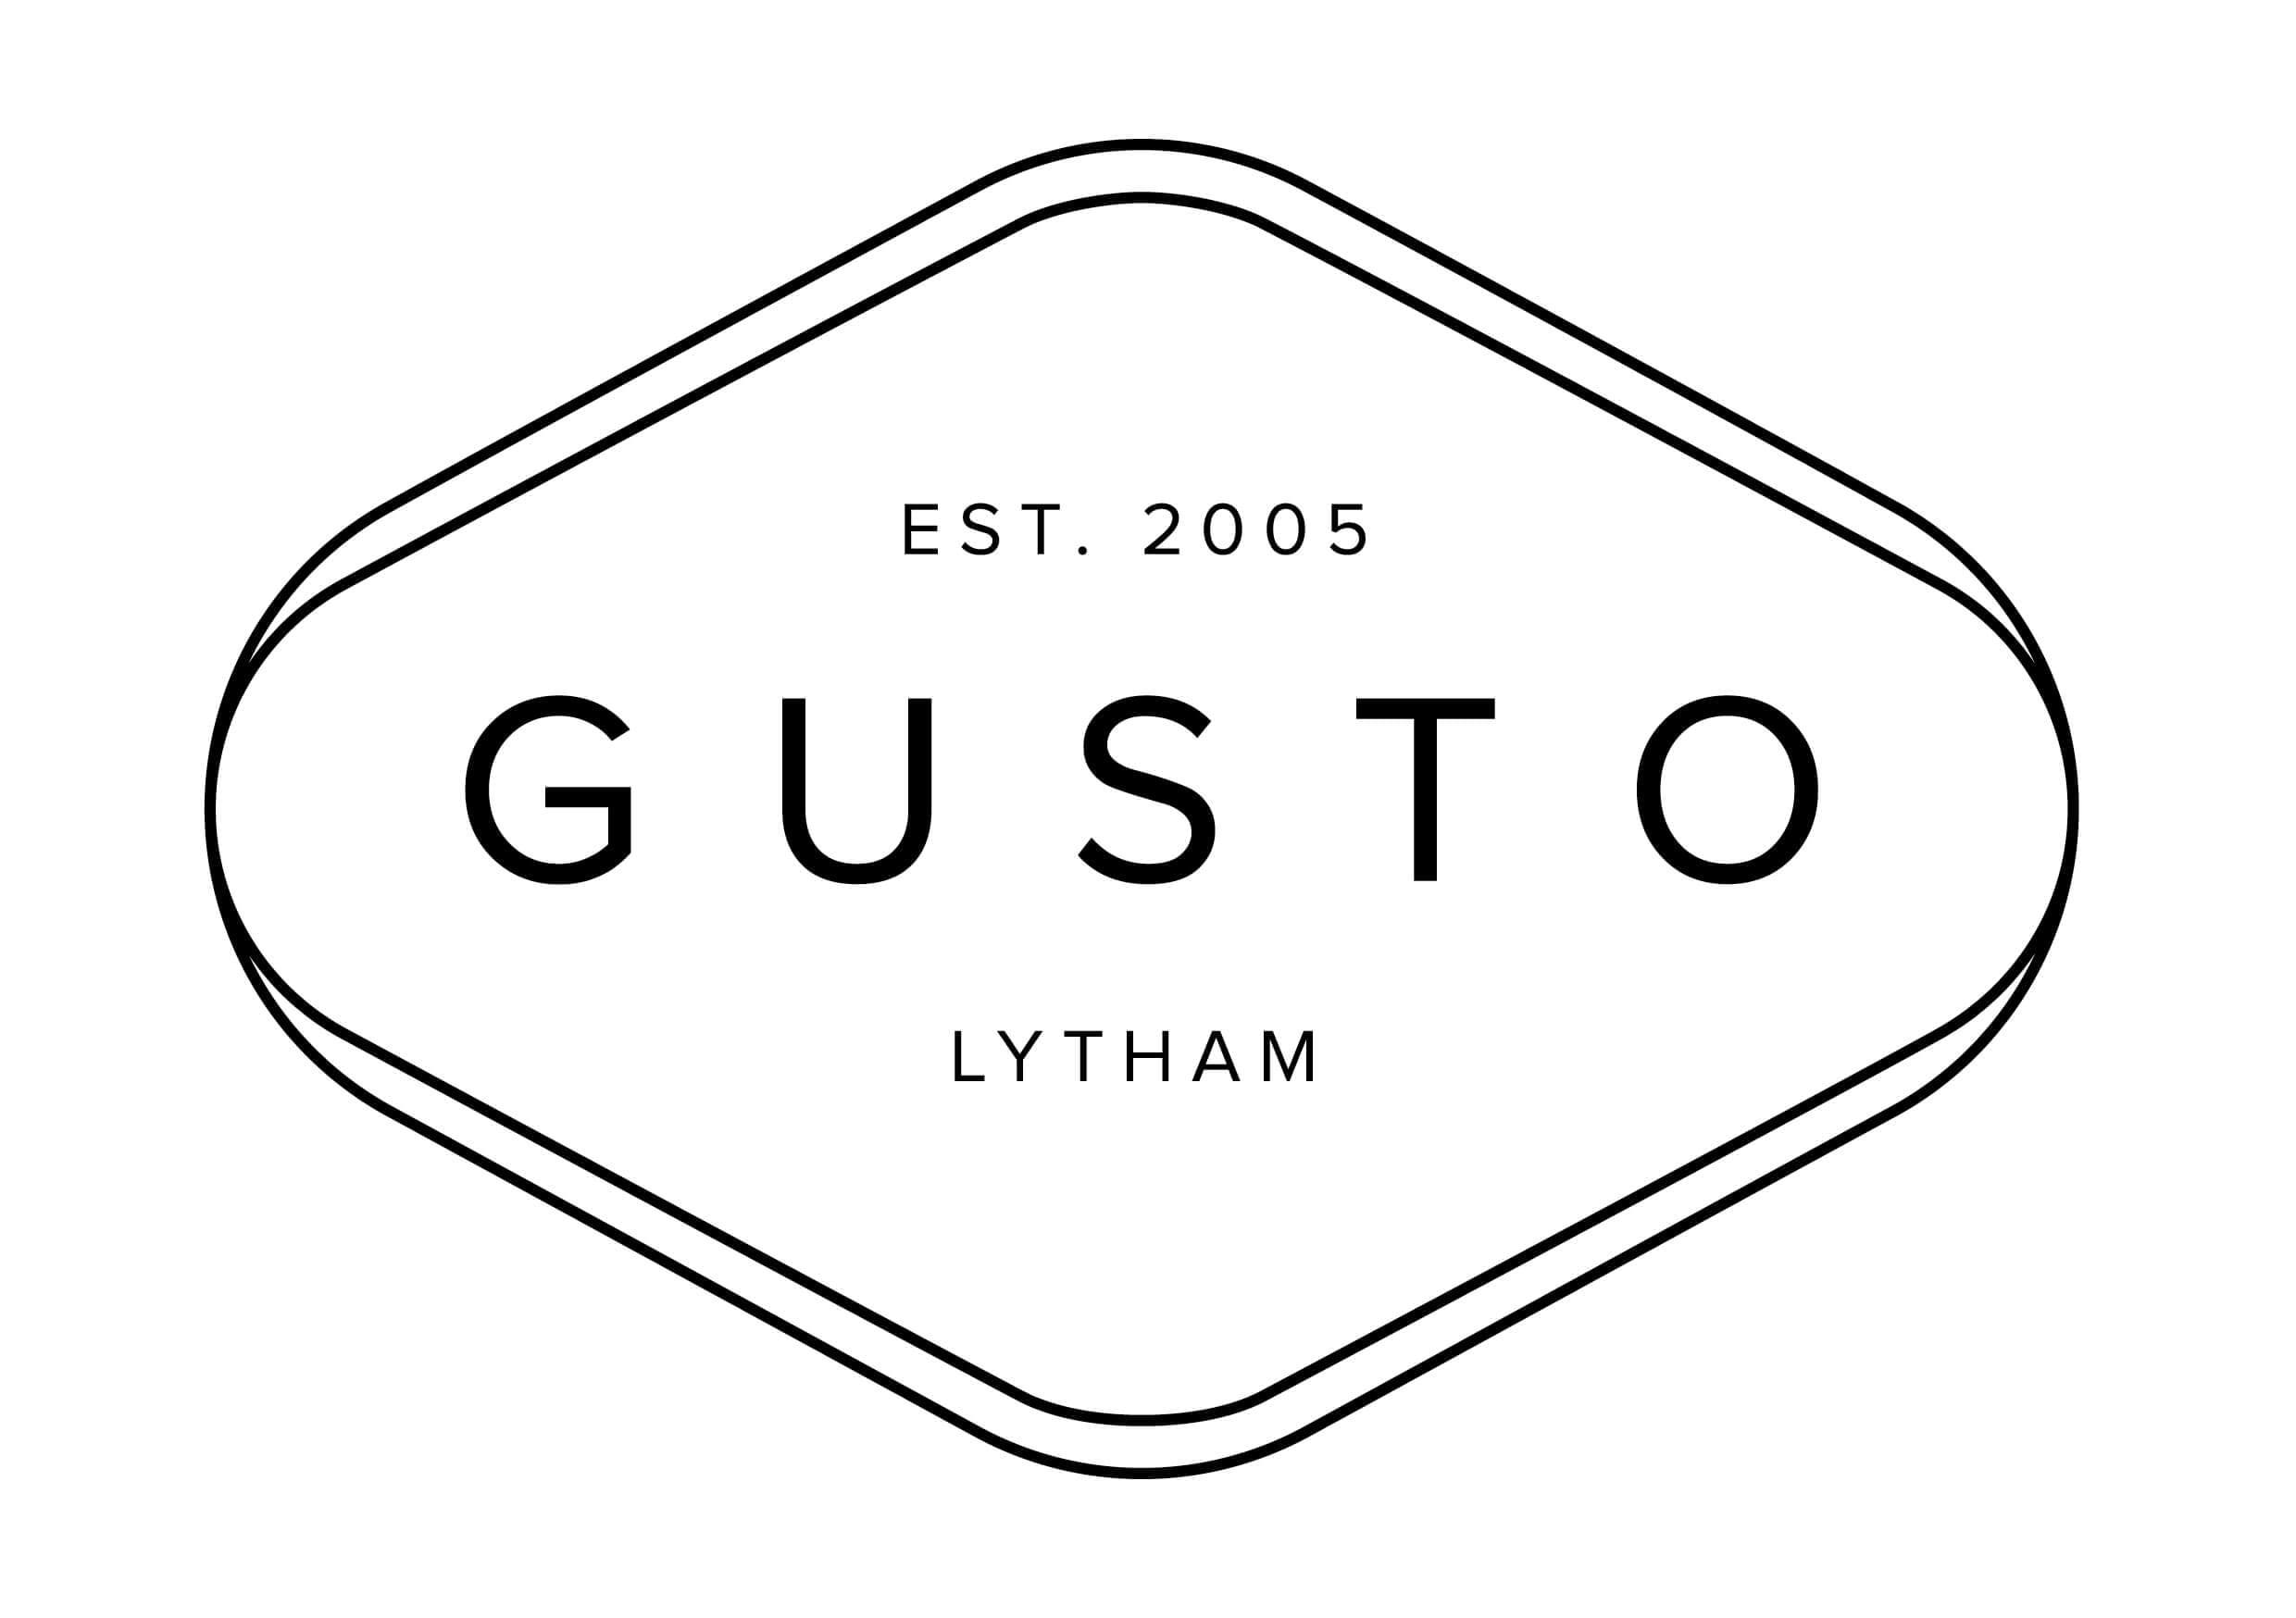 Gusto Gets Ready For First Lytham Club Day